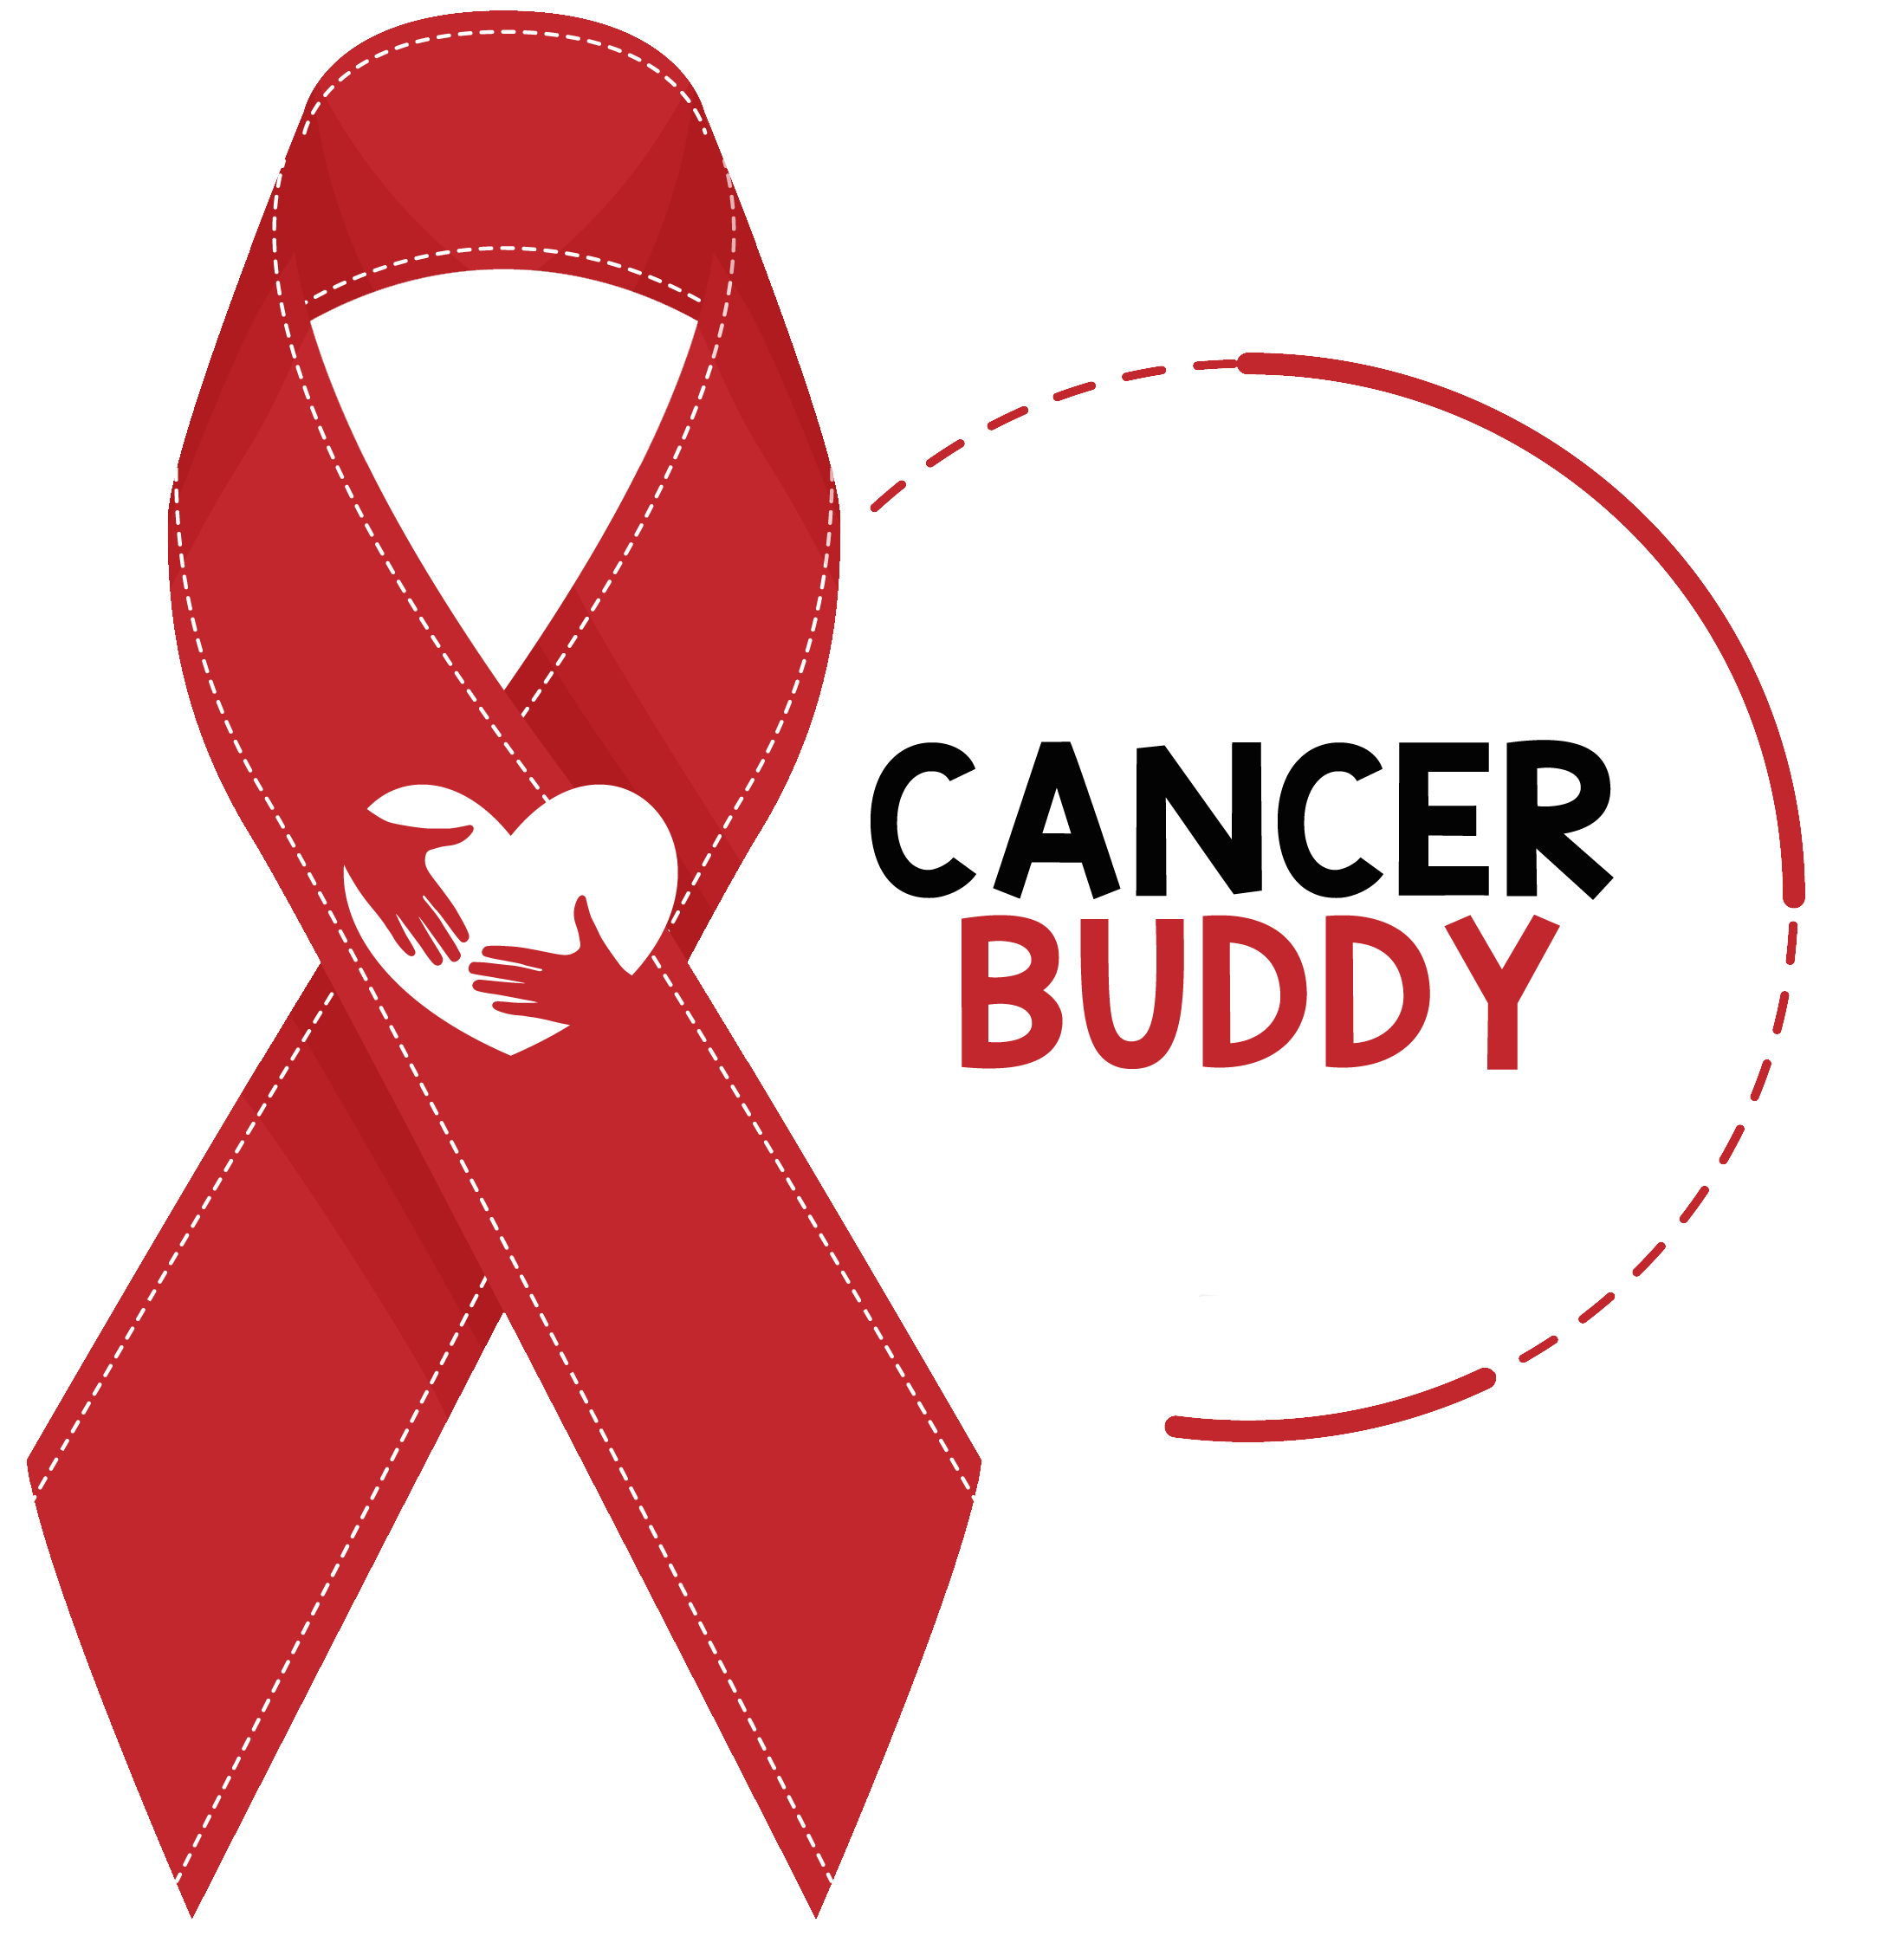 Cancer Buddy